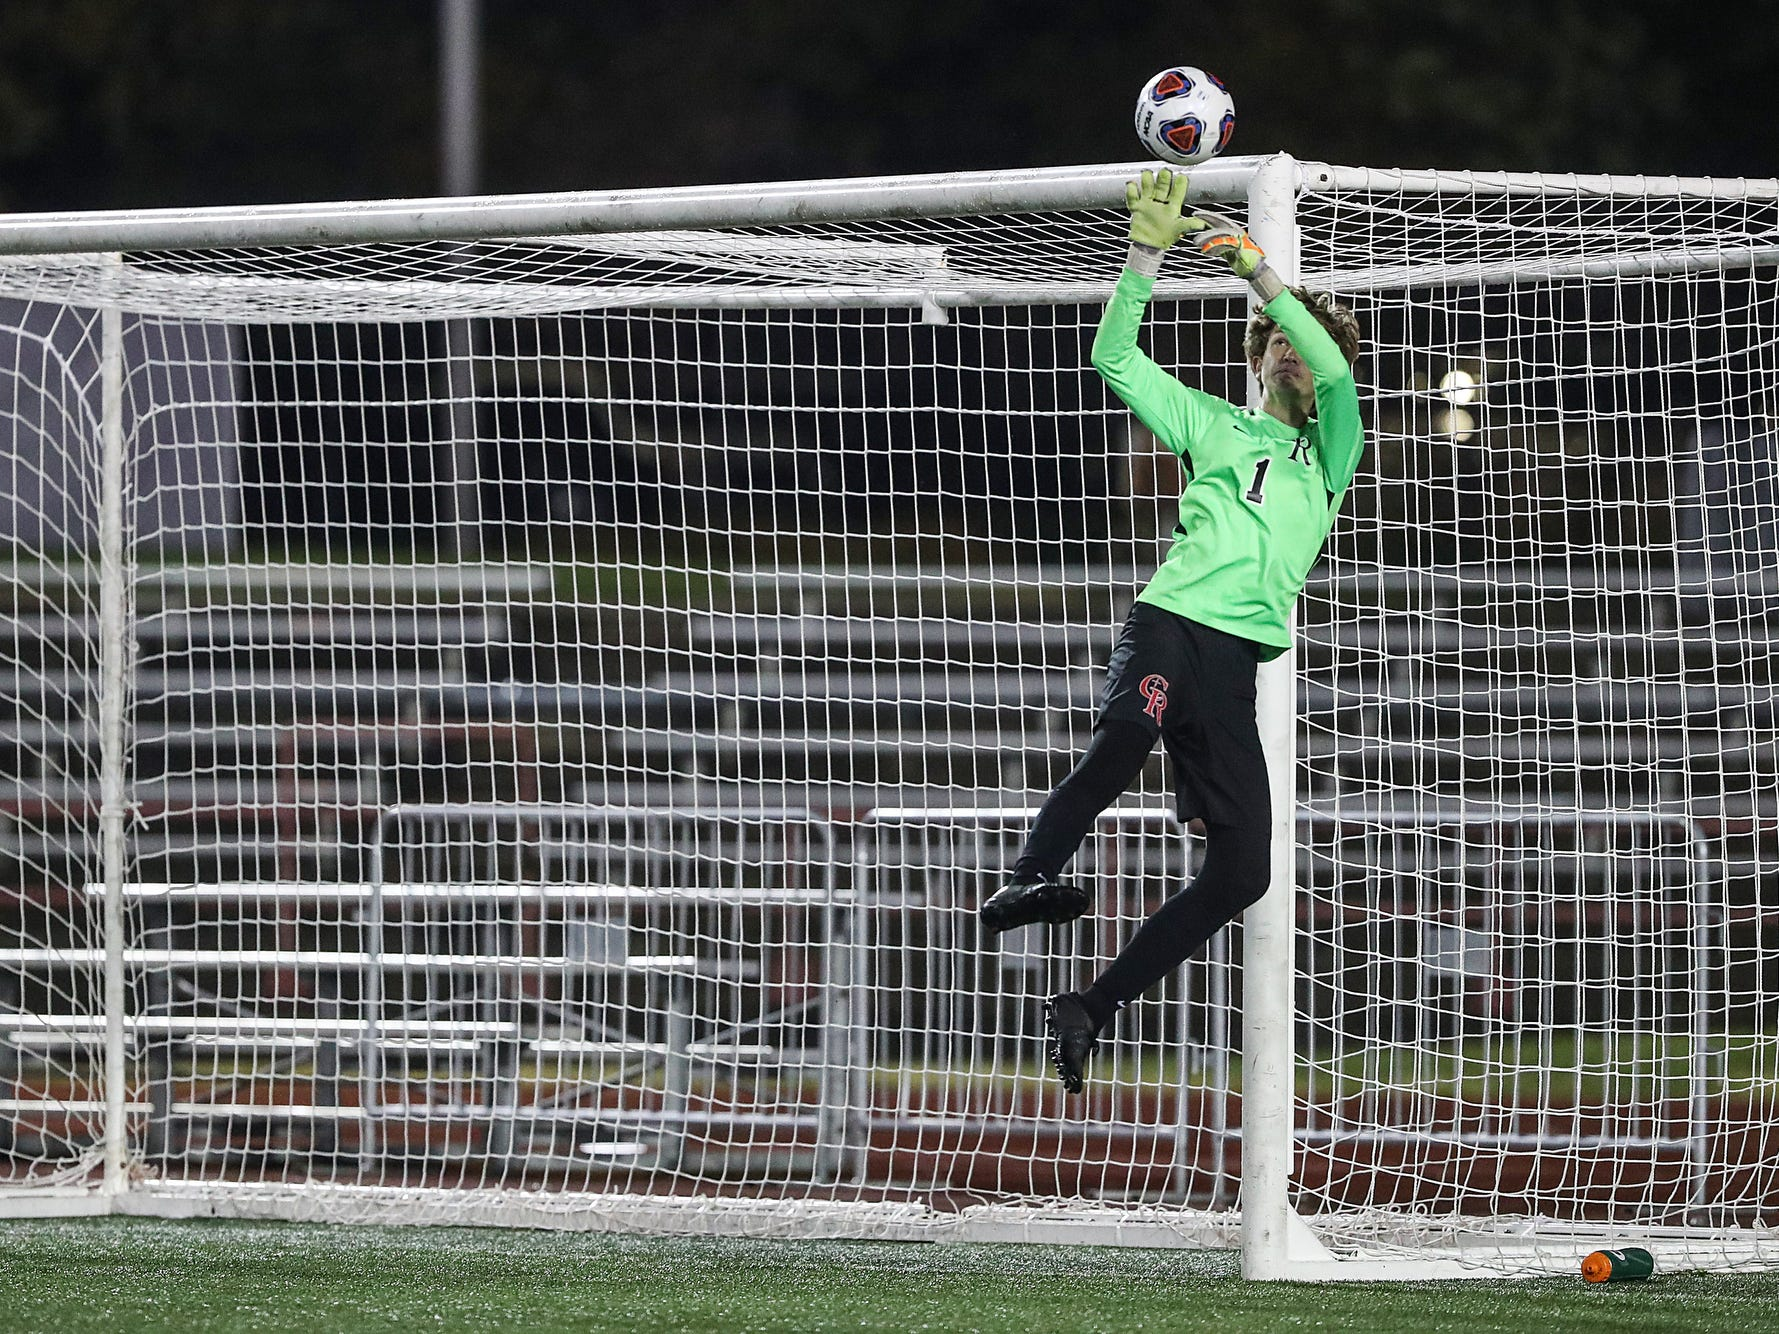 Cardinal Ritter Raiders goalkeeper Hayden Grider (1) stops a shot by the Hammond Bishop Noll Warriors during the second half of IHSAA class 2A state finals at IUPUI's Michael A. Carroll Stadium in Indianapolis, Friday, Oct. 26, 2018. Hammond Bishop Noll defeated Cardinal Ritter, 1-0.